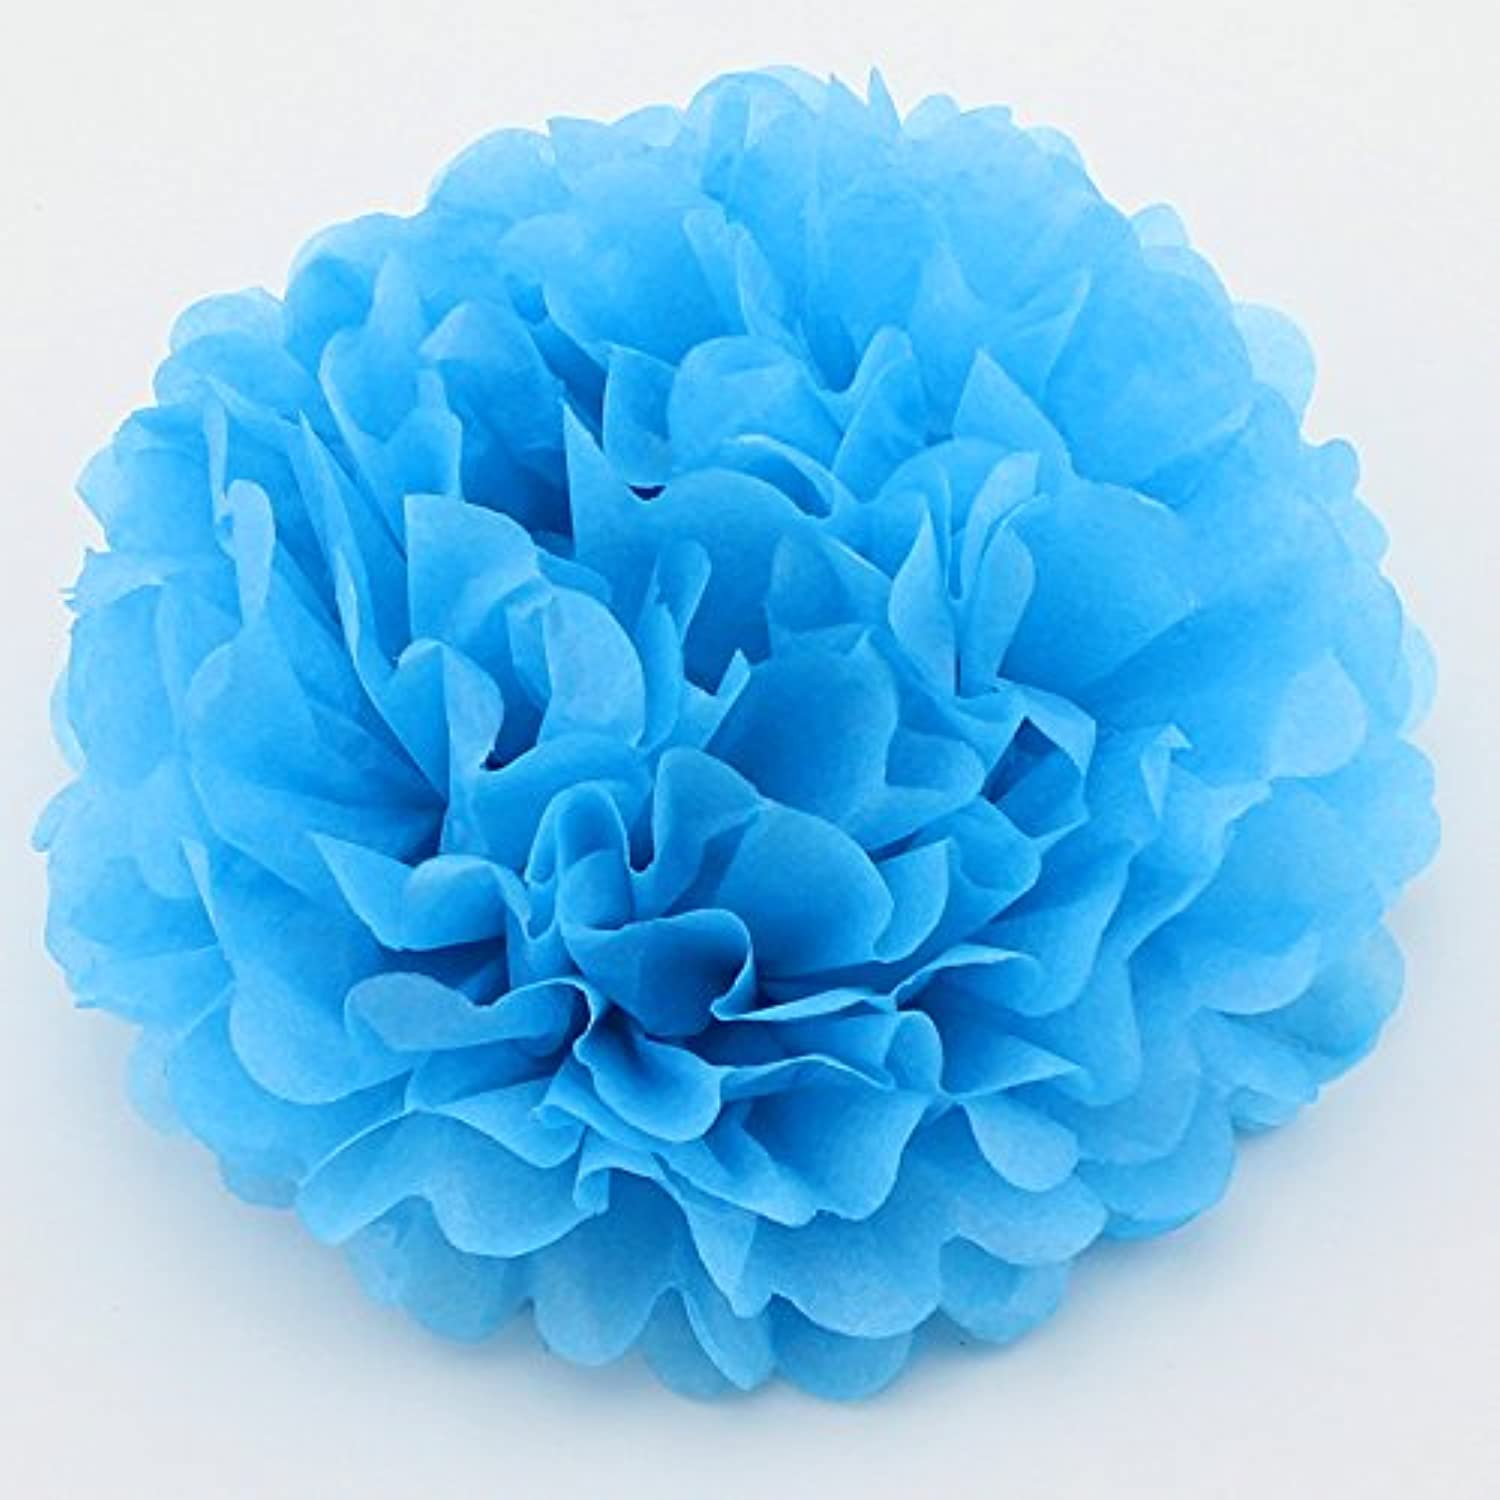 Since 8-Inch Tissue Pom Poms Party Decorations for Weddings, Birthday Parties and Baby Showers,Set of 5 (Sky blue)